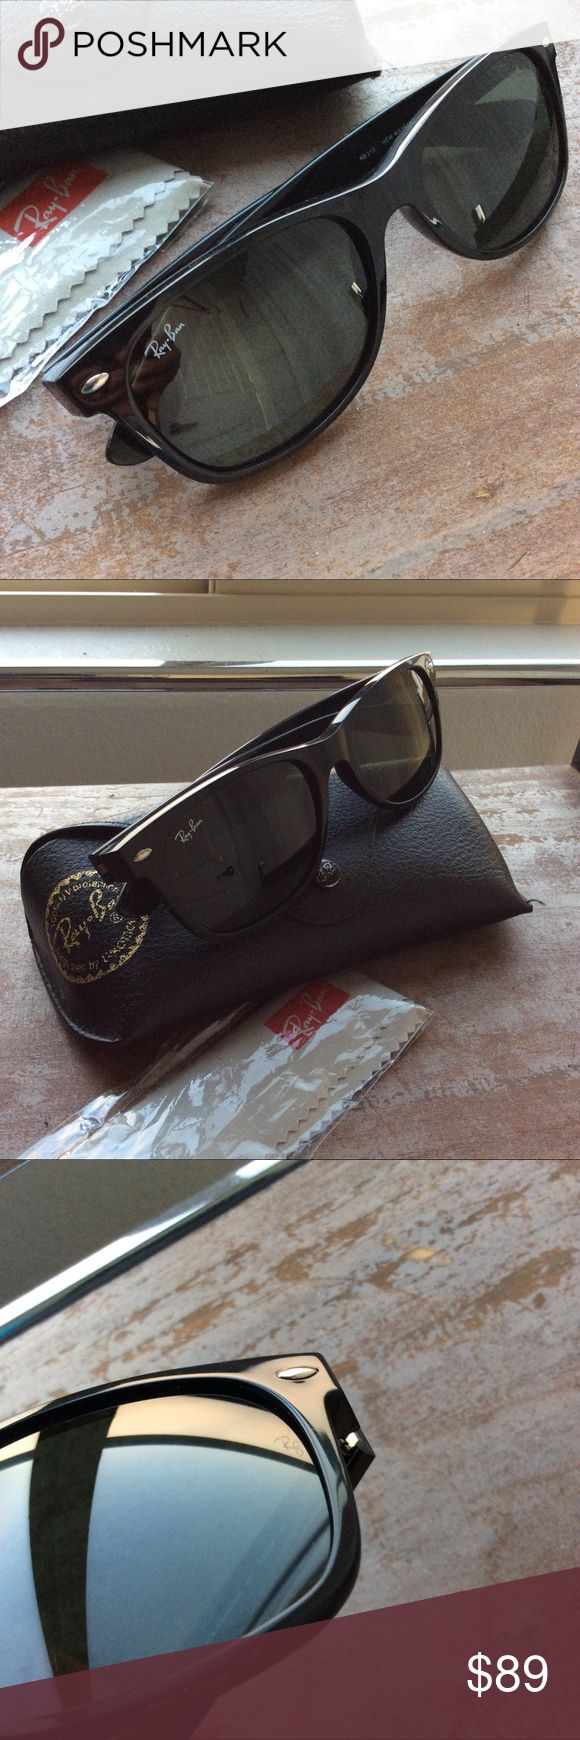 Ray-Ban Wayfarer 2132 55/18 Black New modified Wayfarer style. 55/18 on pre-loved condition. However, no scratches on lenses but some light scuffs on both armbands as shown in pictures. Comes with its case and Ray-Ban cleaning cloth. Sorry, NO TRADES.                                                    👉🏻⏱📫 SHIP SAME/NEXT DAY Ray-Ban Accessories Sunglasses